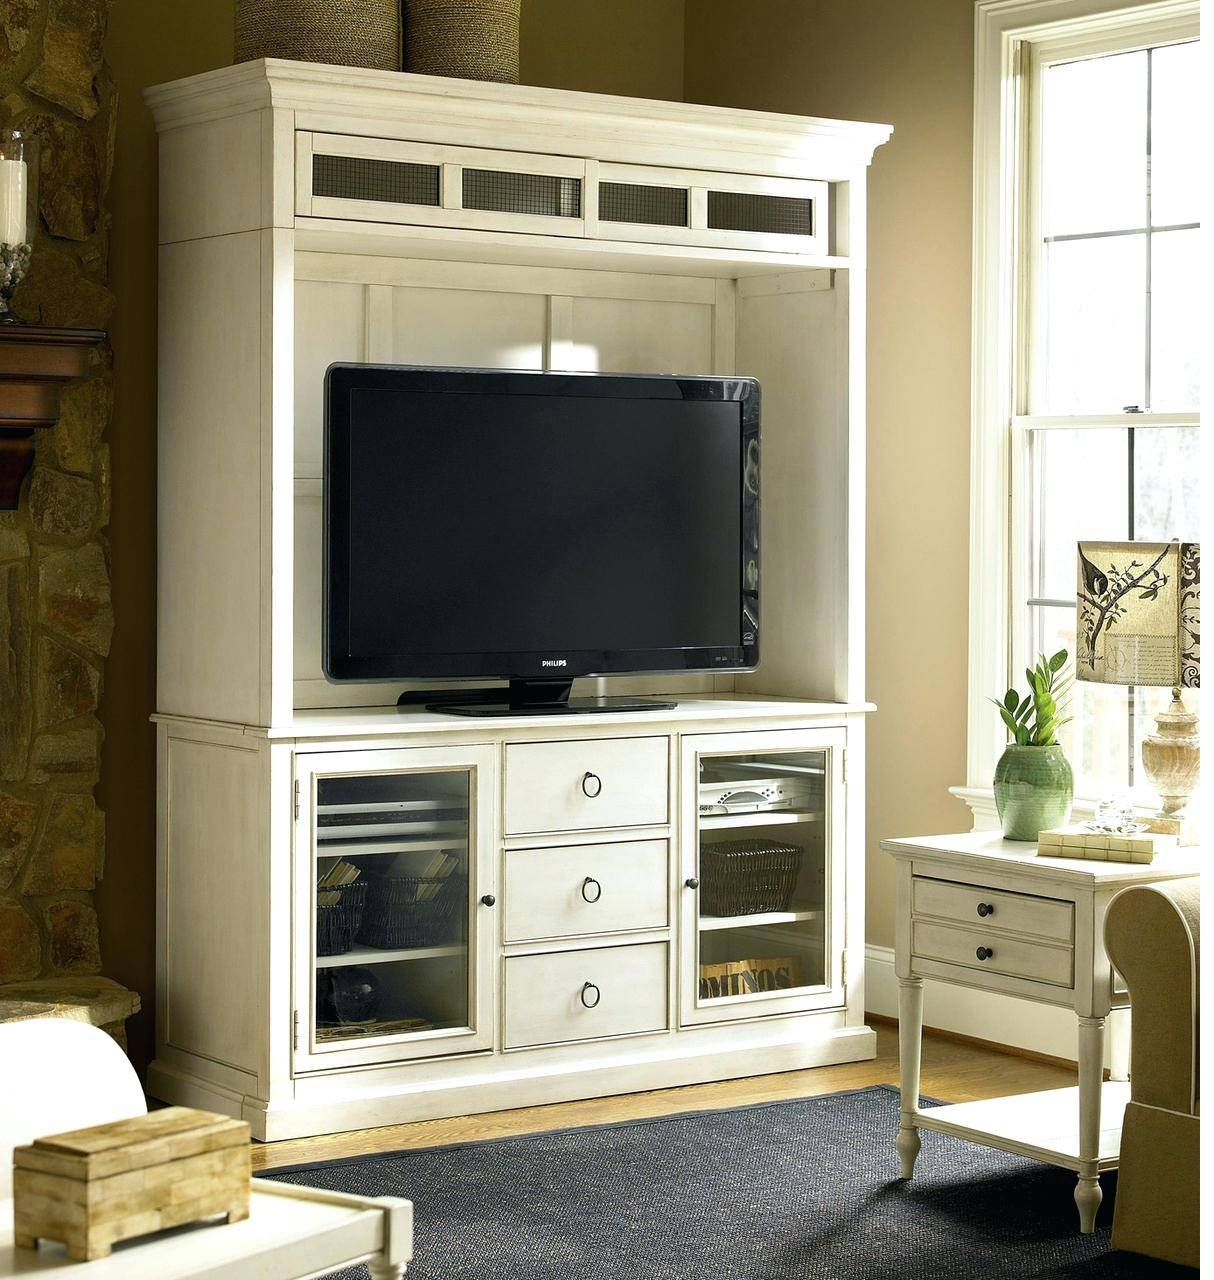 Tv Stand : Wildwood Rustic Gray Oak Storage Entertainment Center pertaining to Maple Wood Tv Stands (Image 8 of 15)